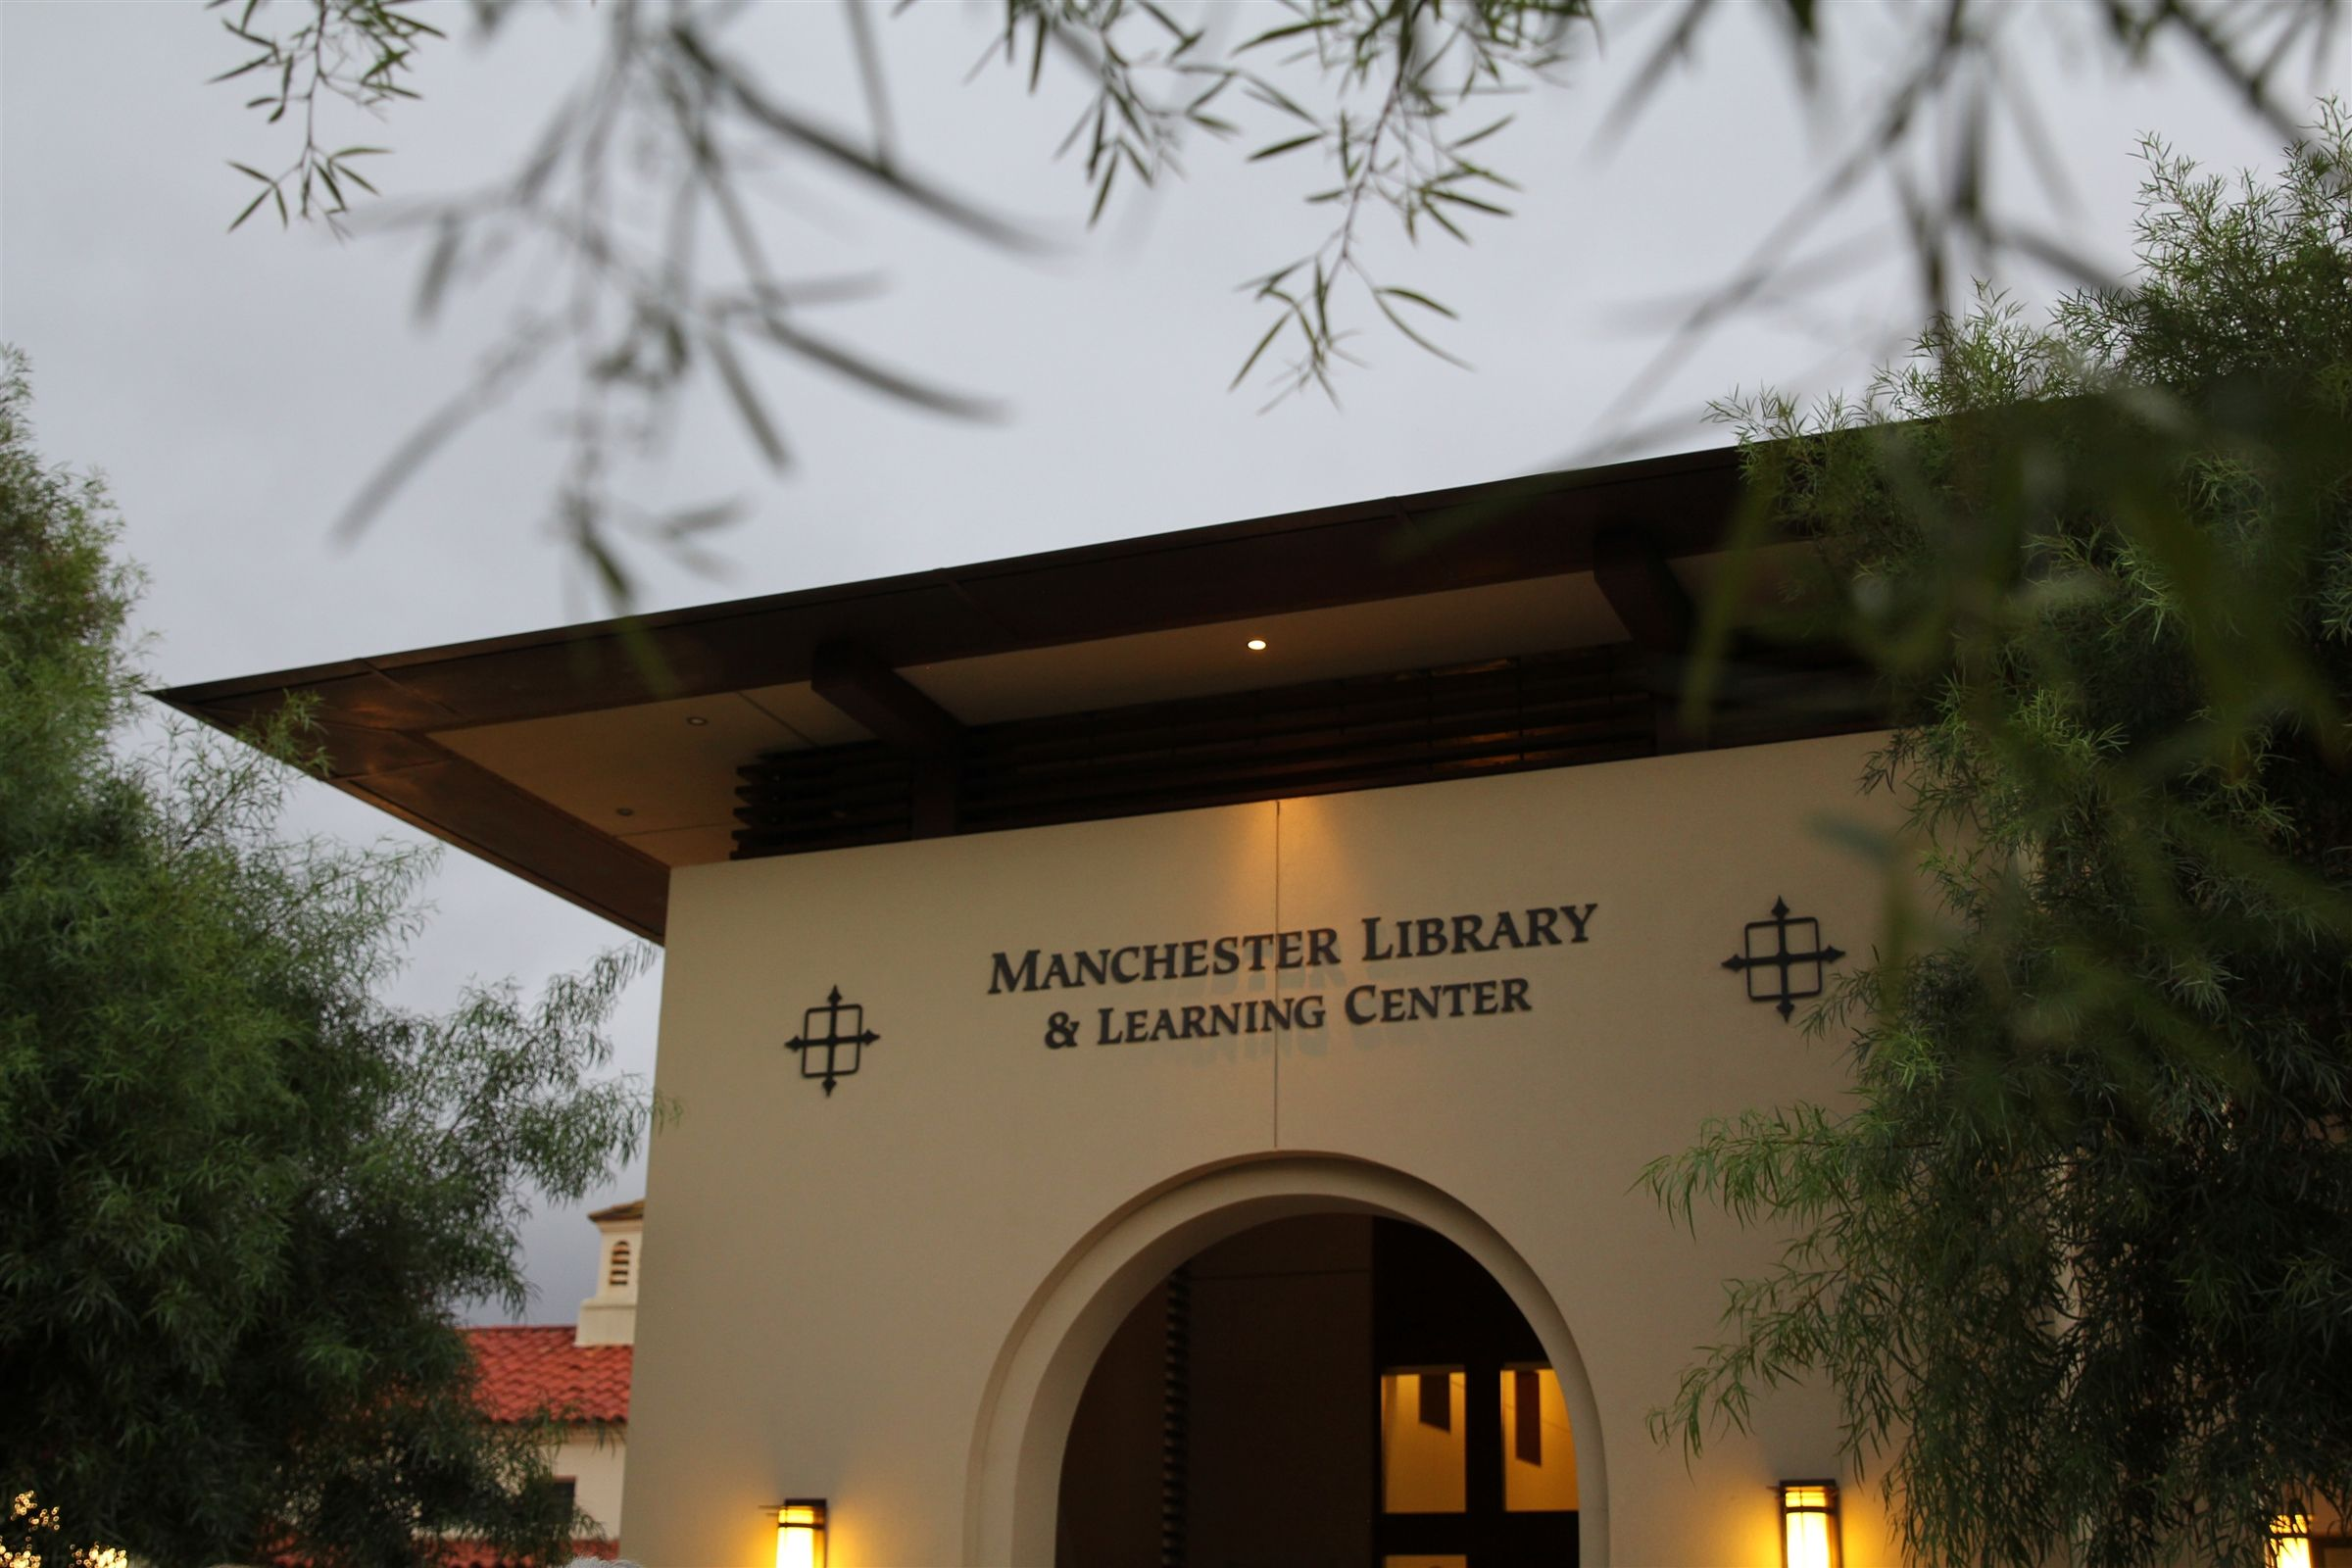 Manchester Library & Learning Center